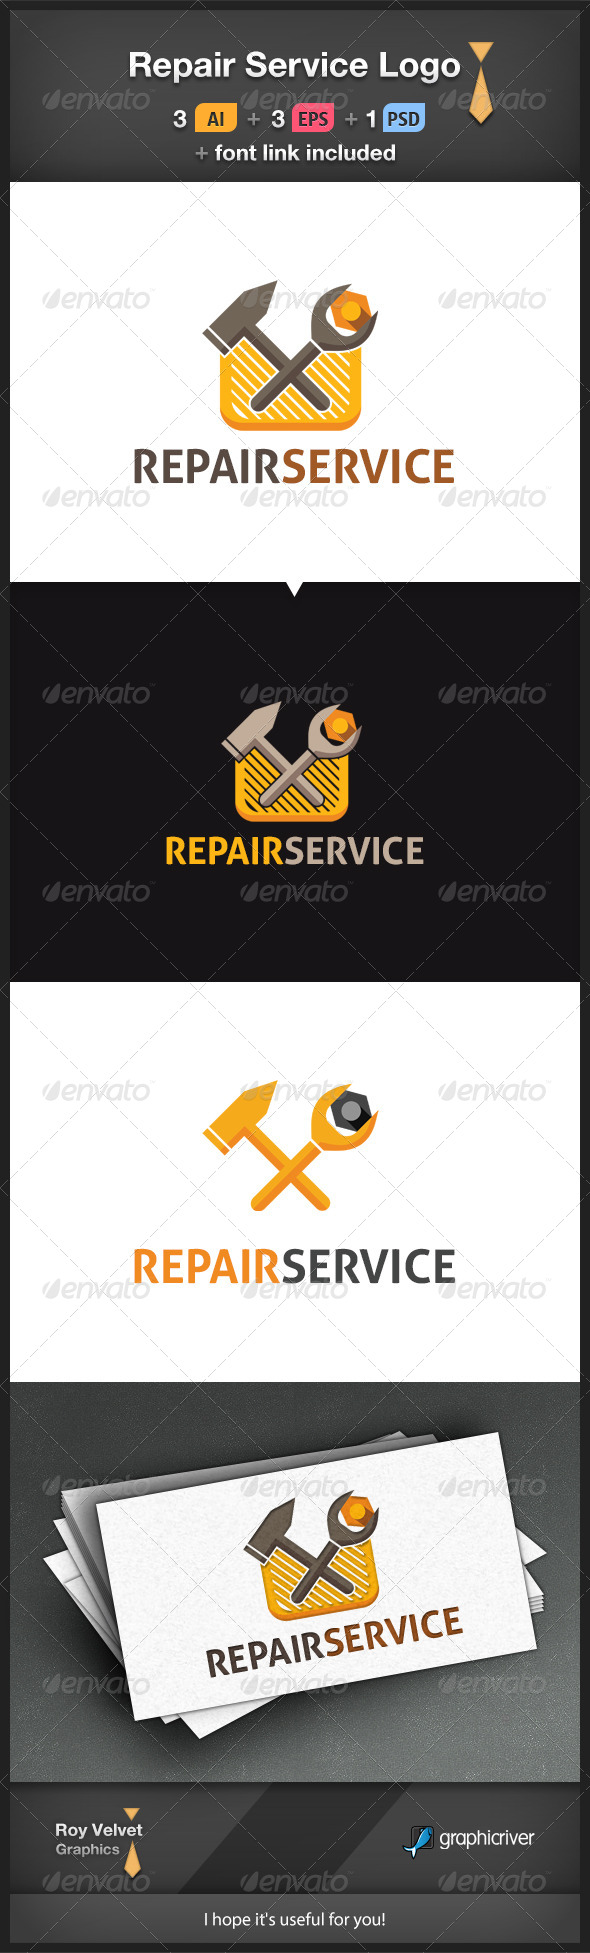 GraphicRiver Repair Service Logo 6366324